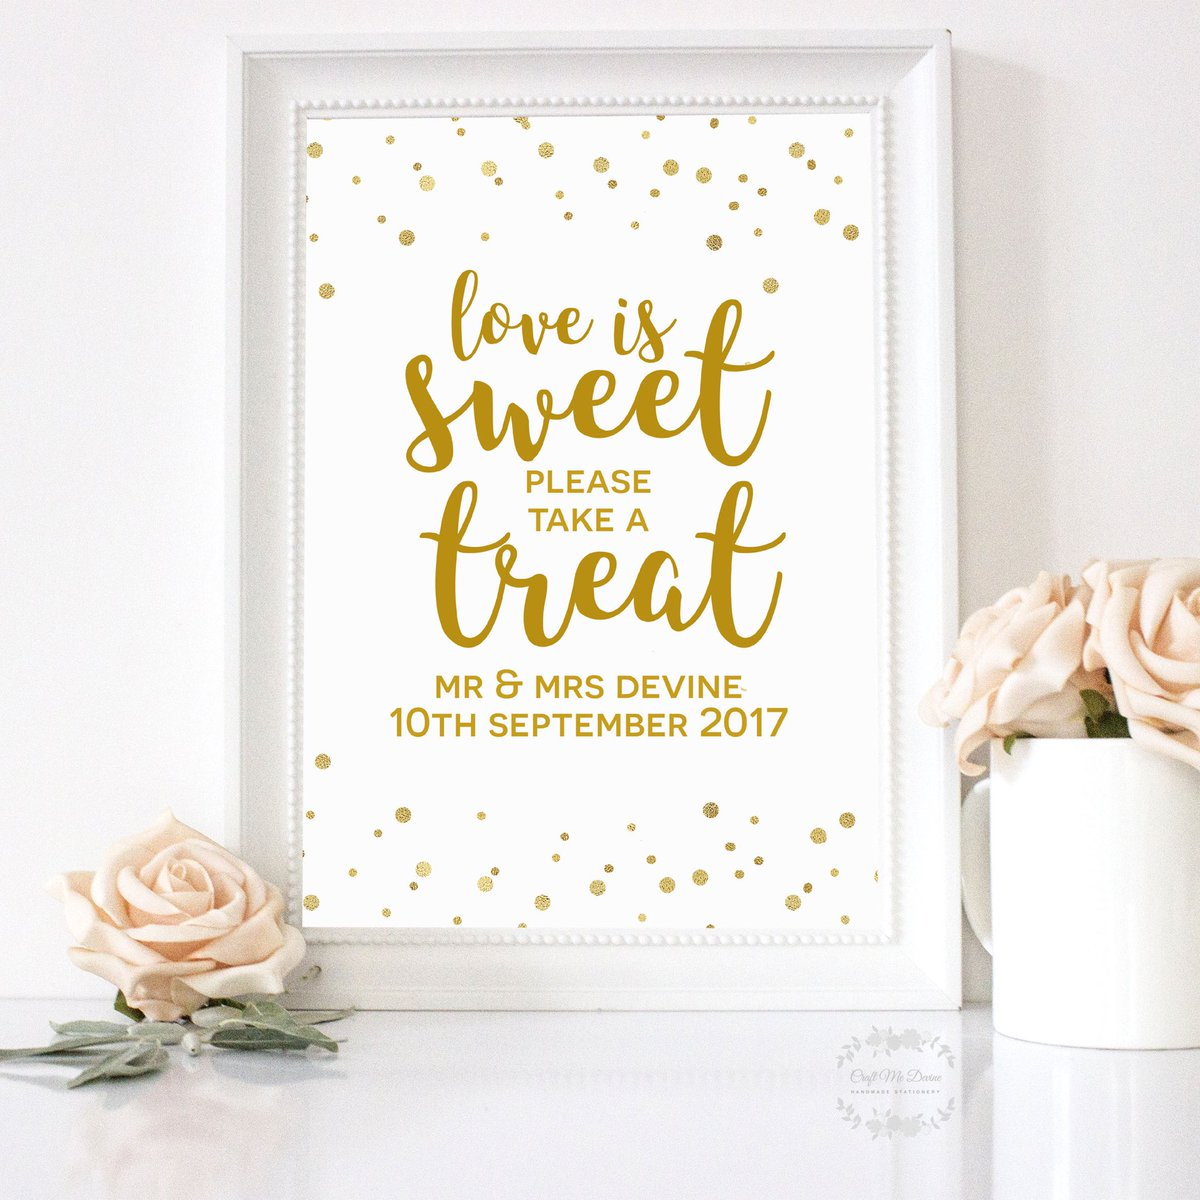 Pop on over to my Facebook page where you can win THREE wedding signs of your choice!  http:// Facebook.com/CraftMeDevine  &nbsp;     #crafturday #weekend  #saturdaymorning #onlinecraft #oldhamhour #atsocialmedia #wedding #flockbn #uksopro<br>http://pic.twitter.com/FnDEqxQzFb